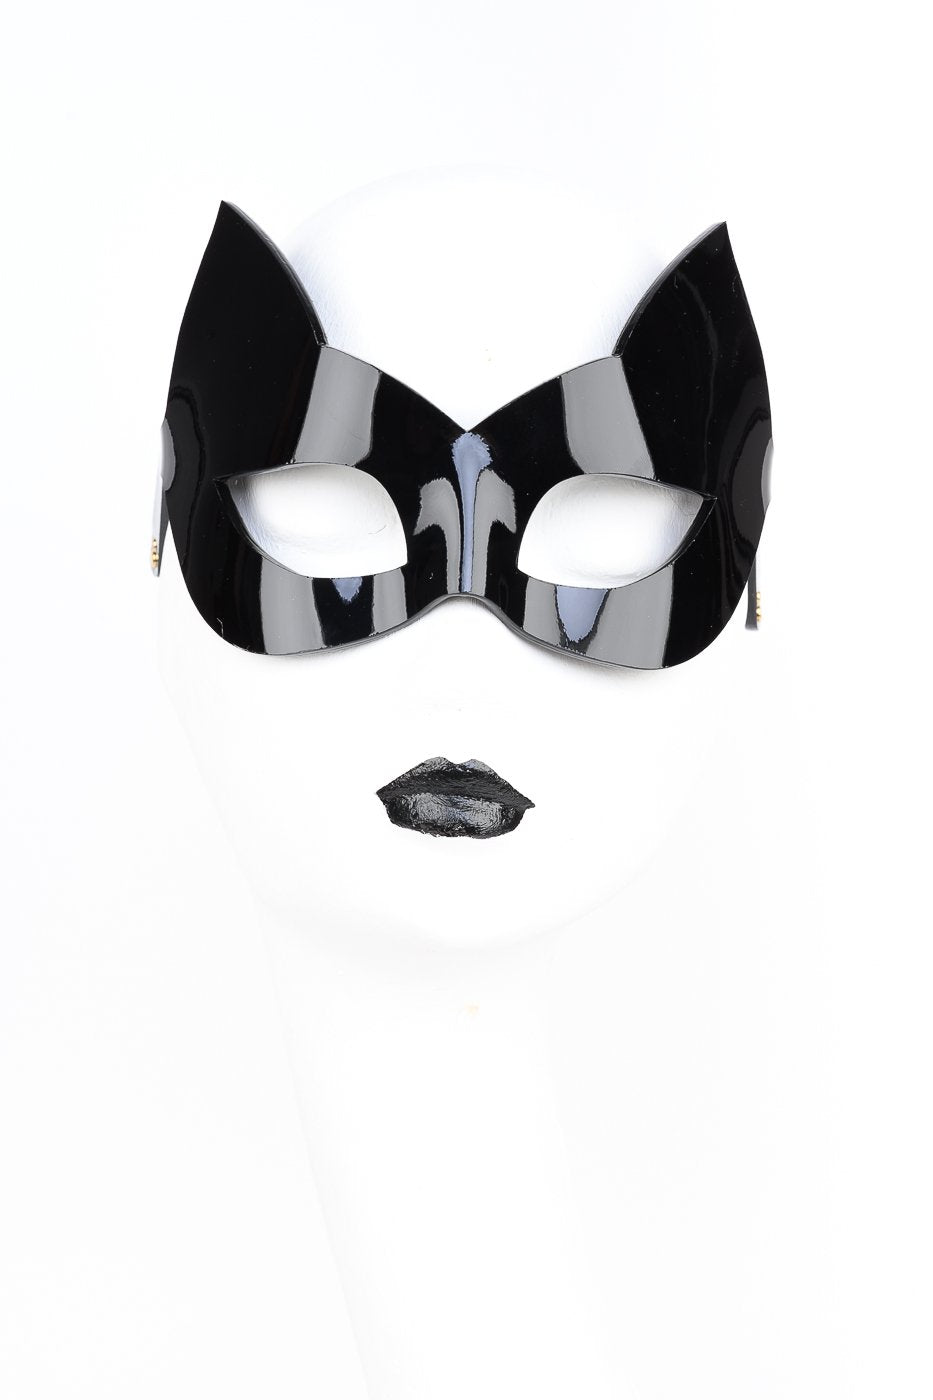 Fk Kitten Sunglasses